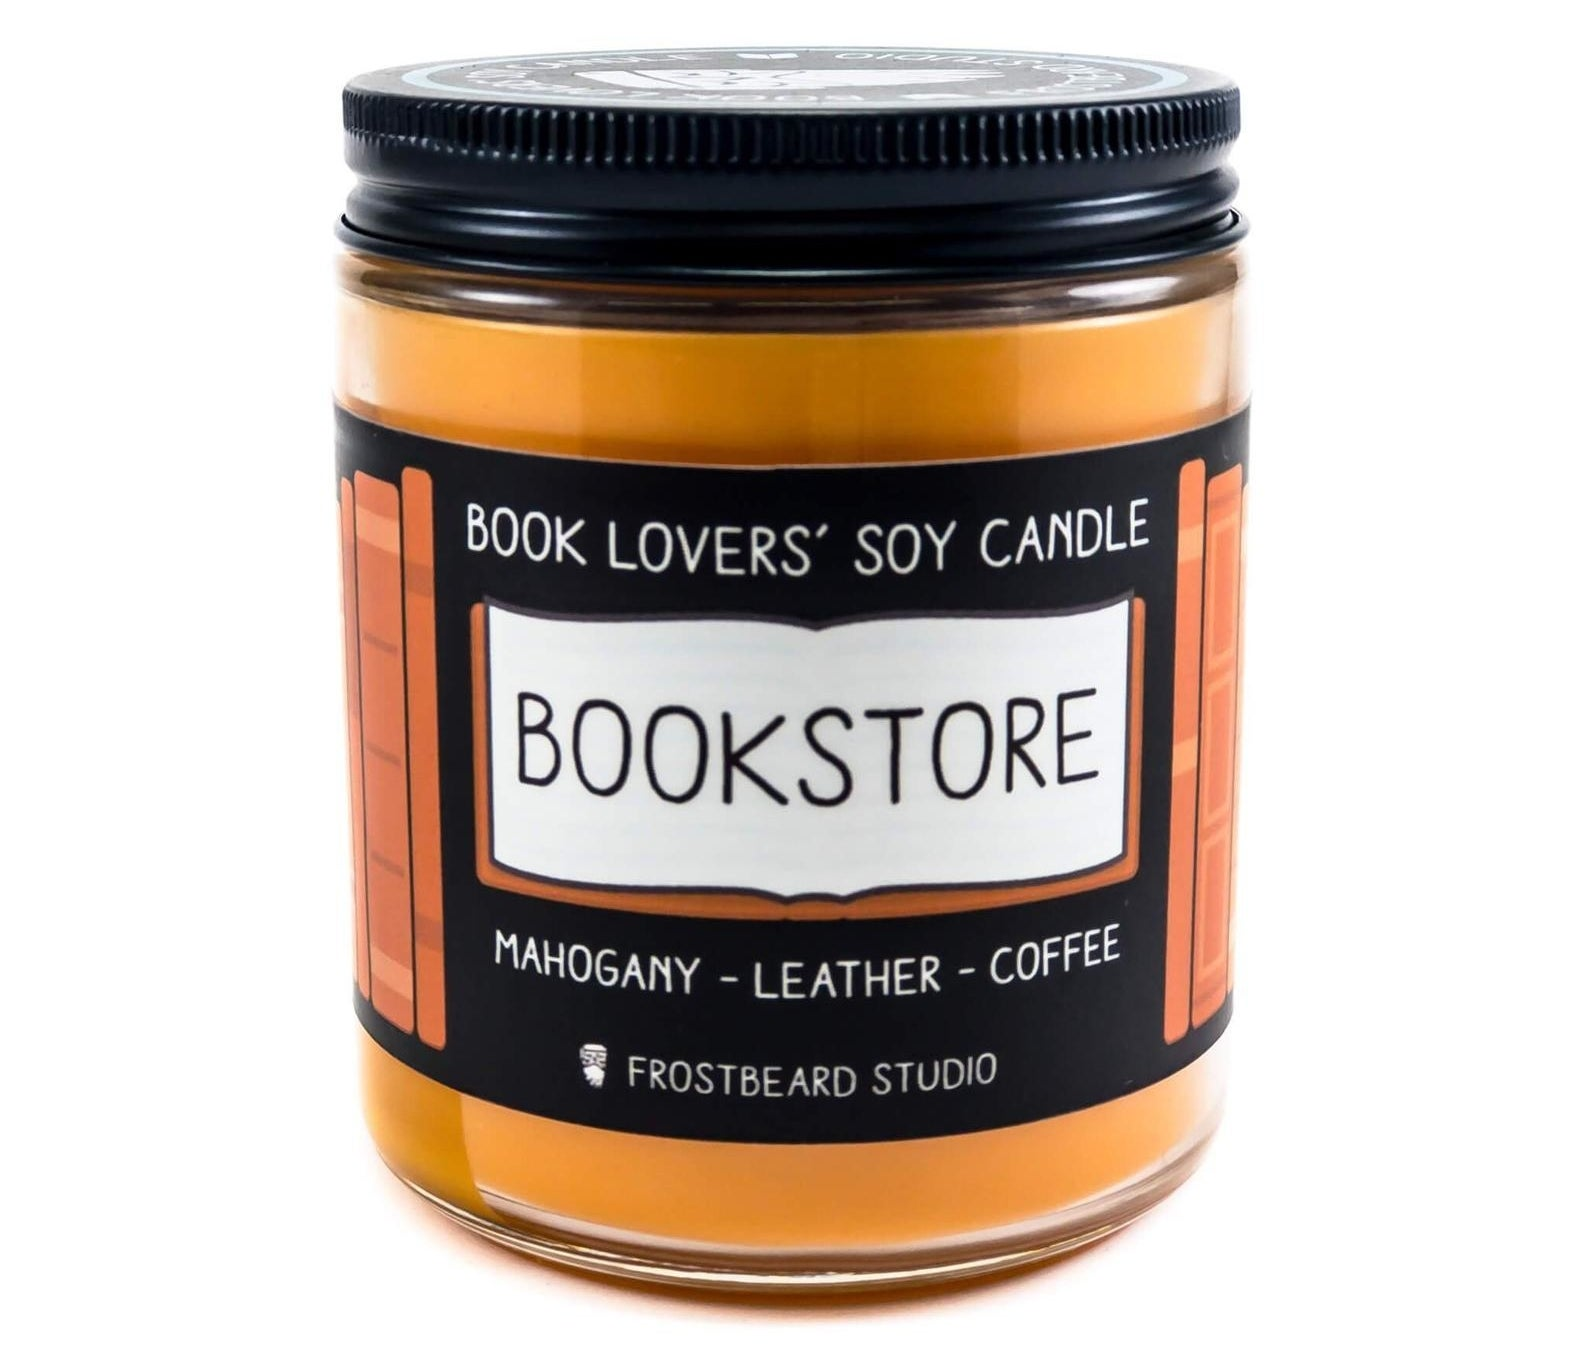 the orange candle with the bookstore label and labeled as smelling like mahogany, leather, and coffee